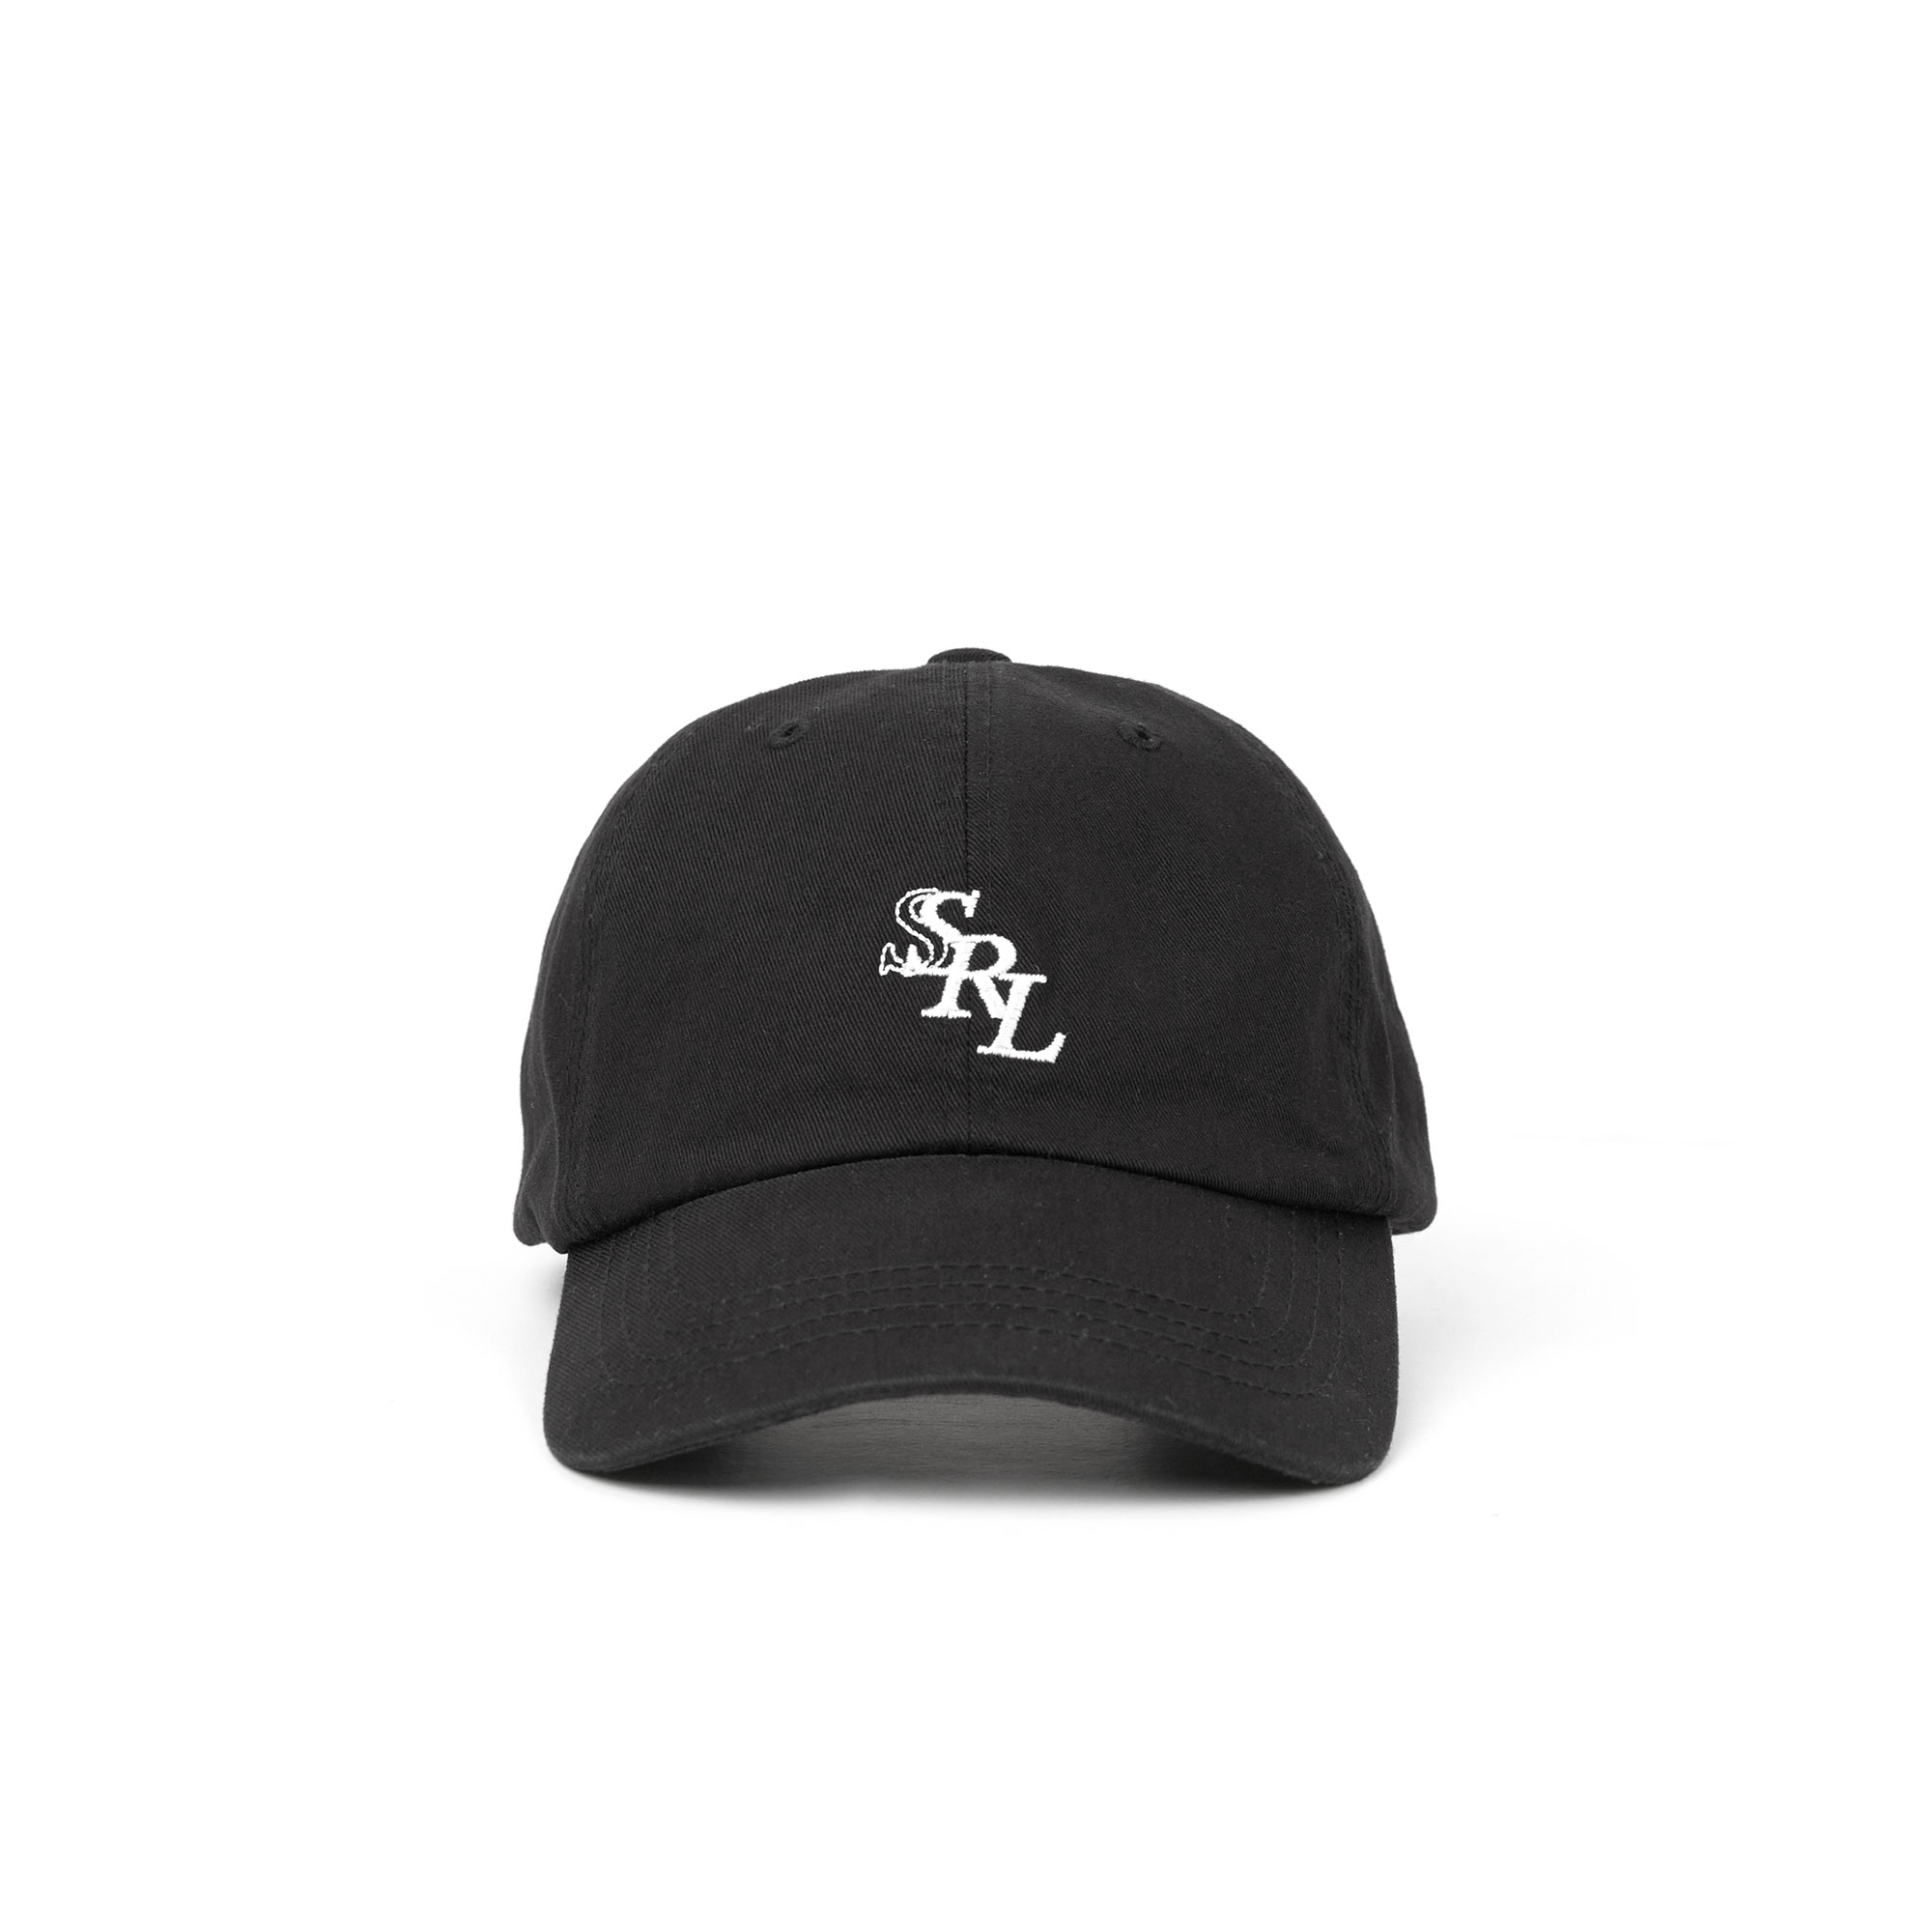 slant logo ball cap / black